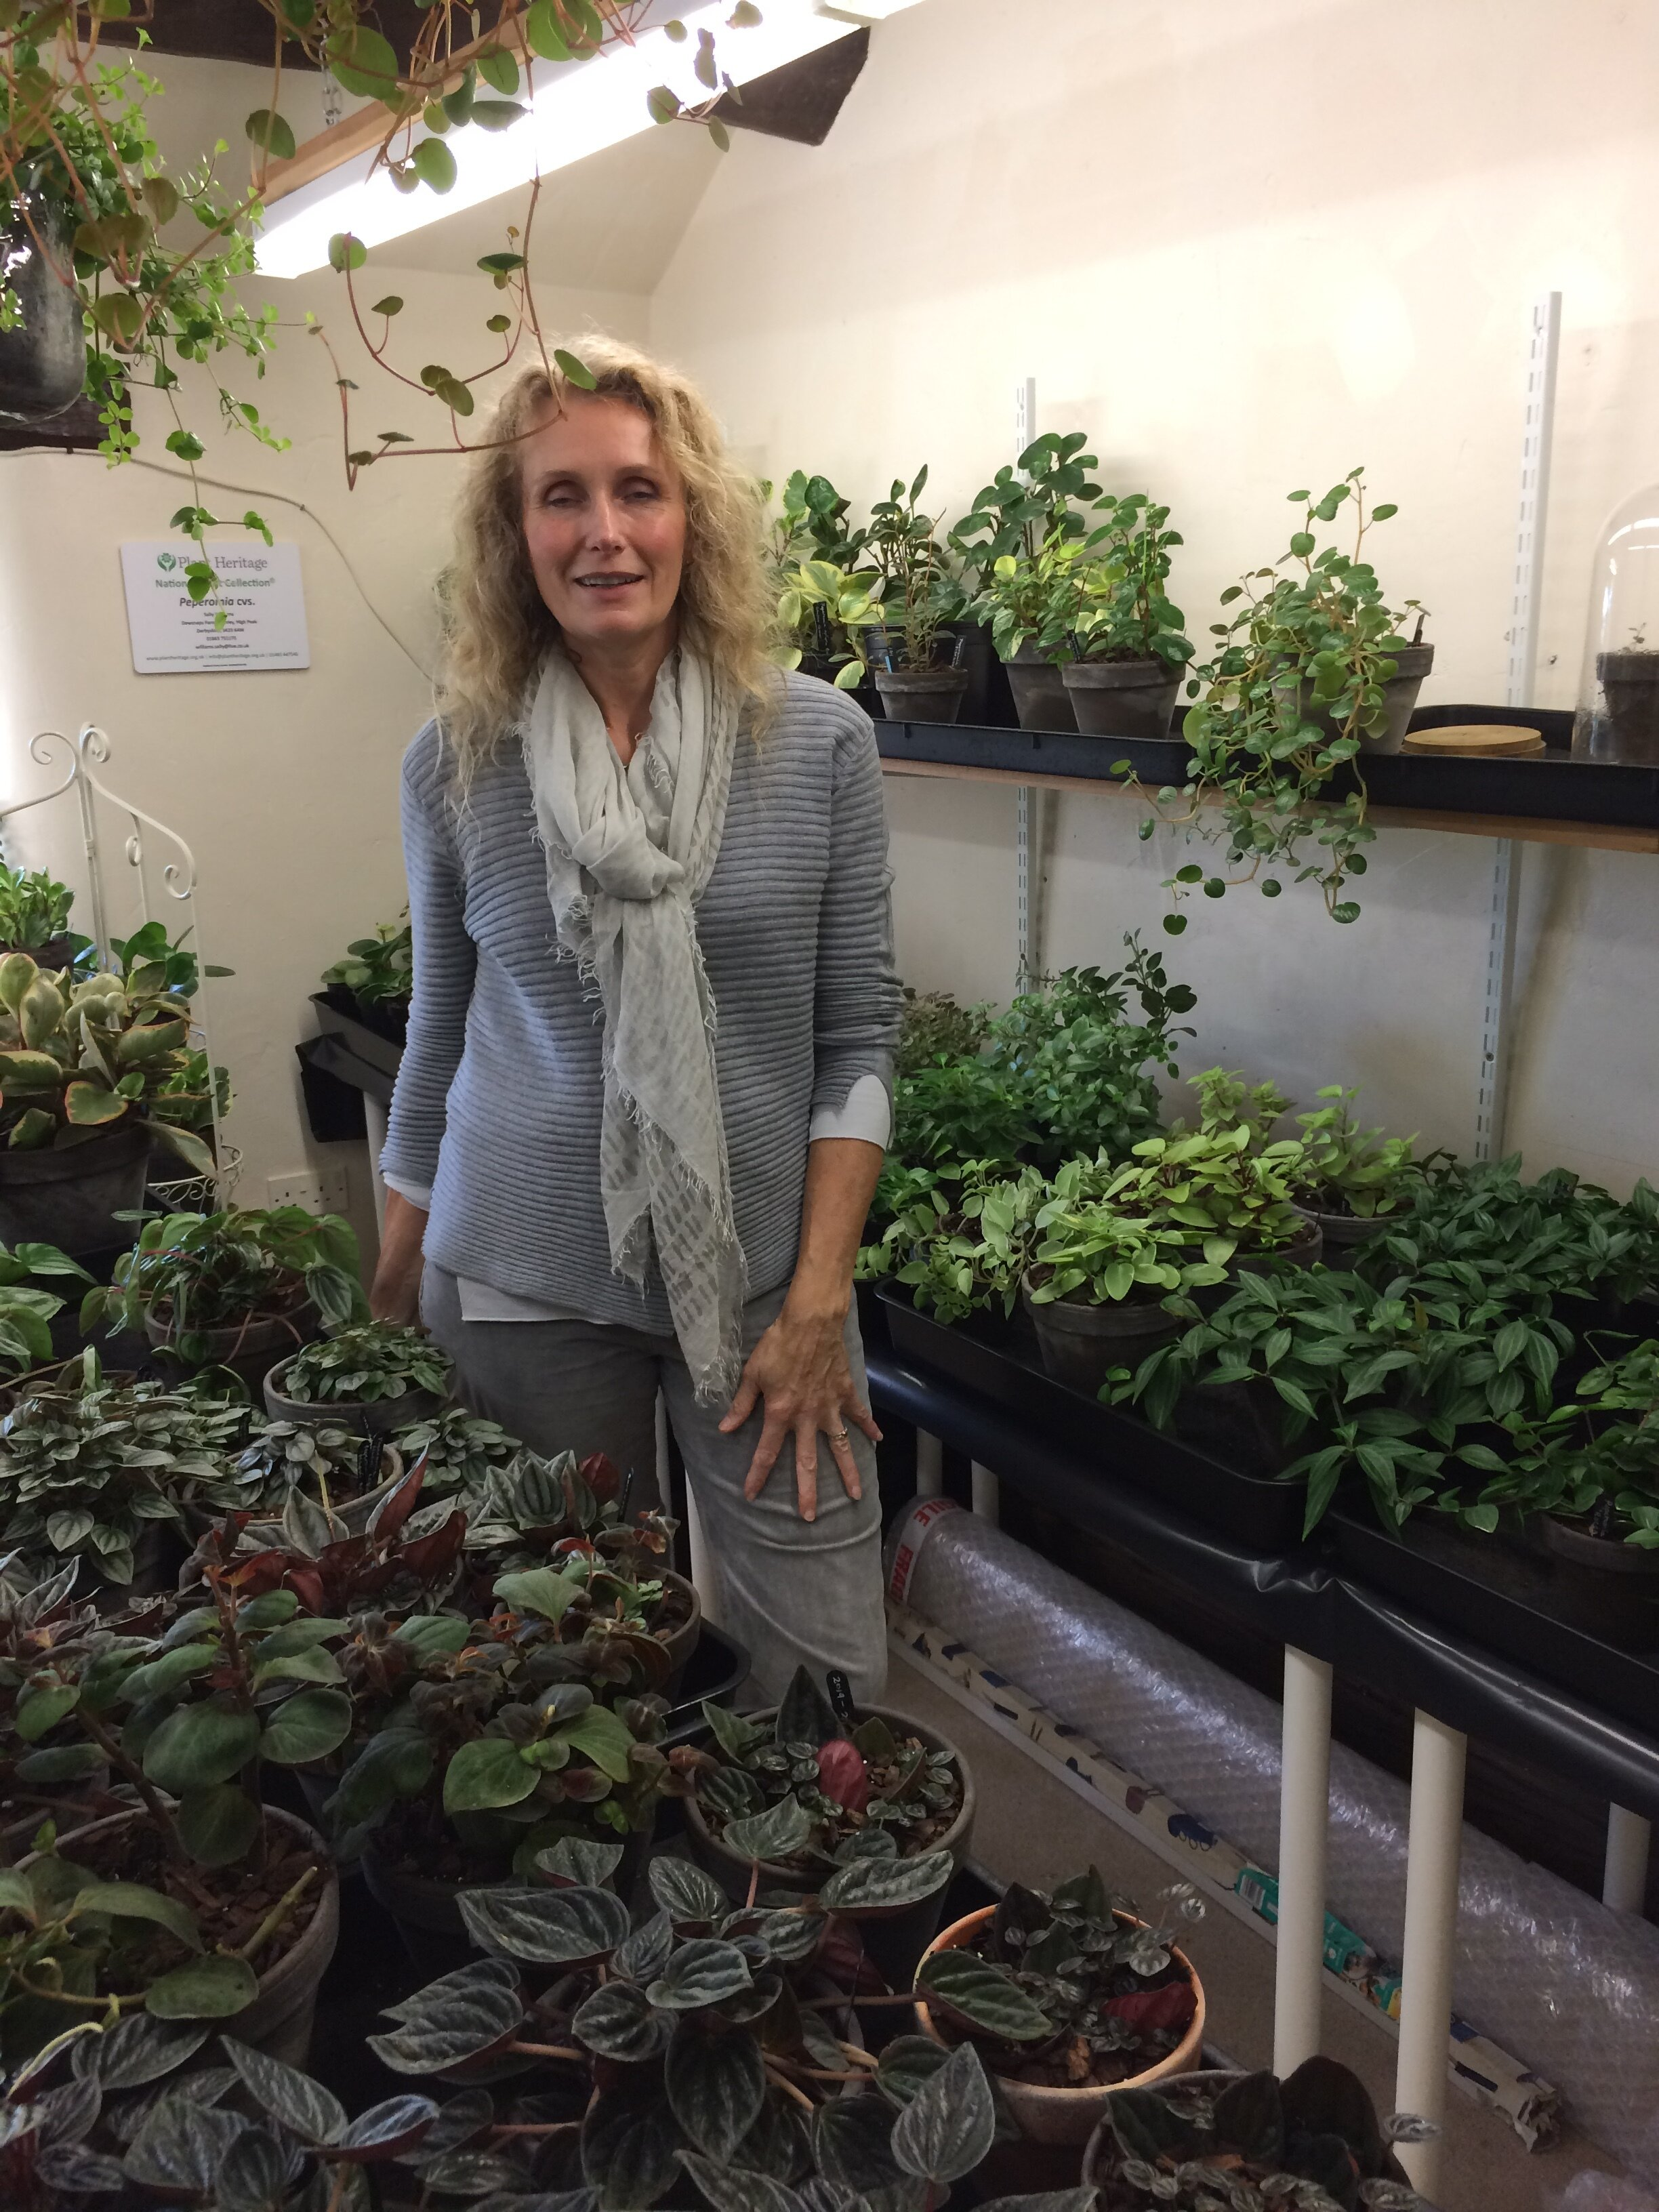 Sally Williams in her Peperomia room. Photograph: Jane Perrone